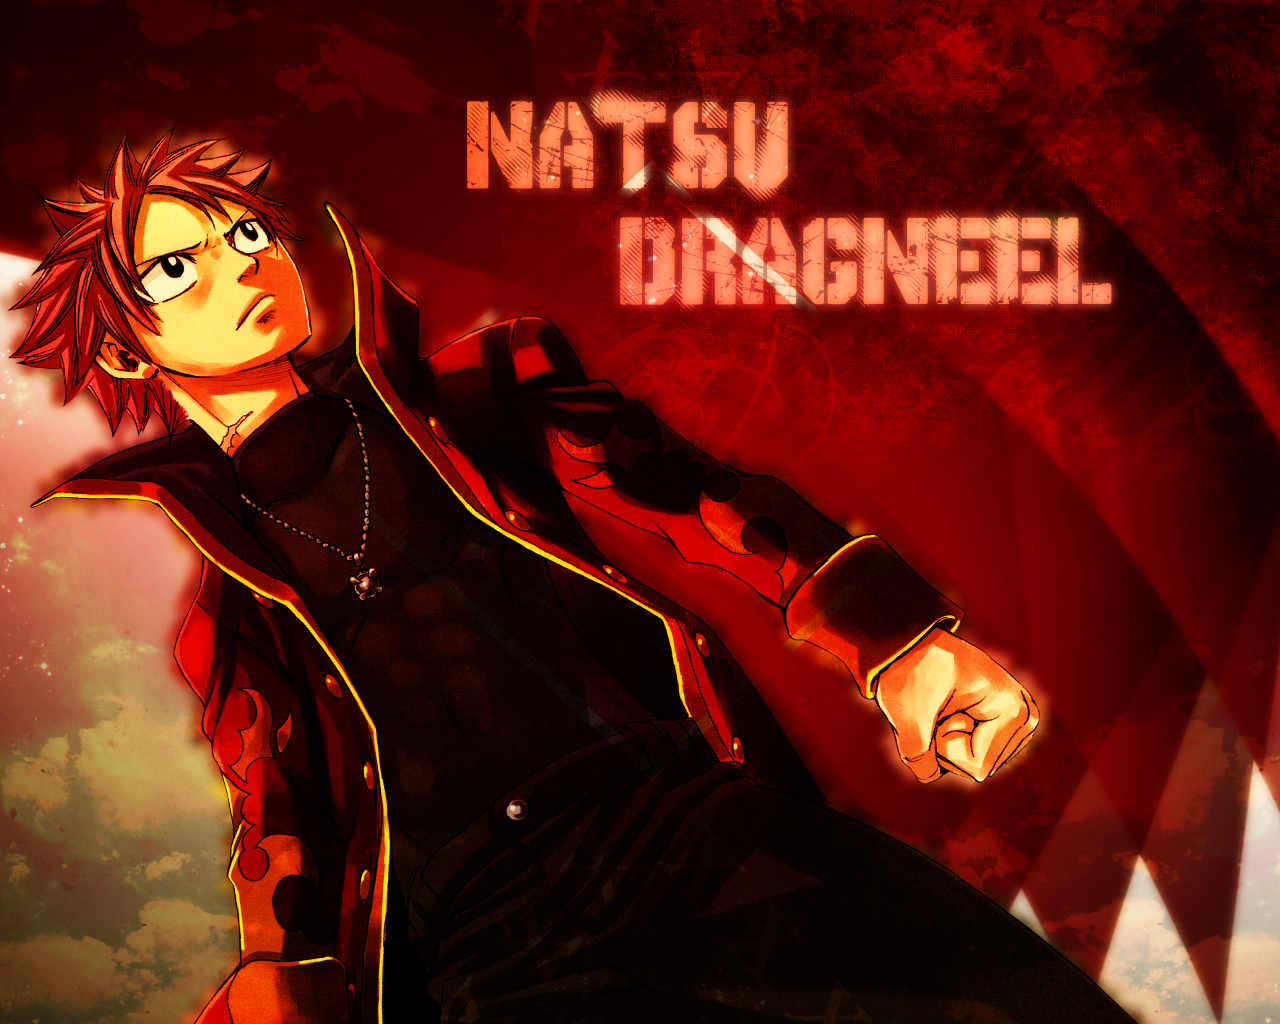 Fairy Tail Natsu Dragneel Wallpaper By Silas Tsunayoshi On